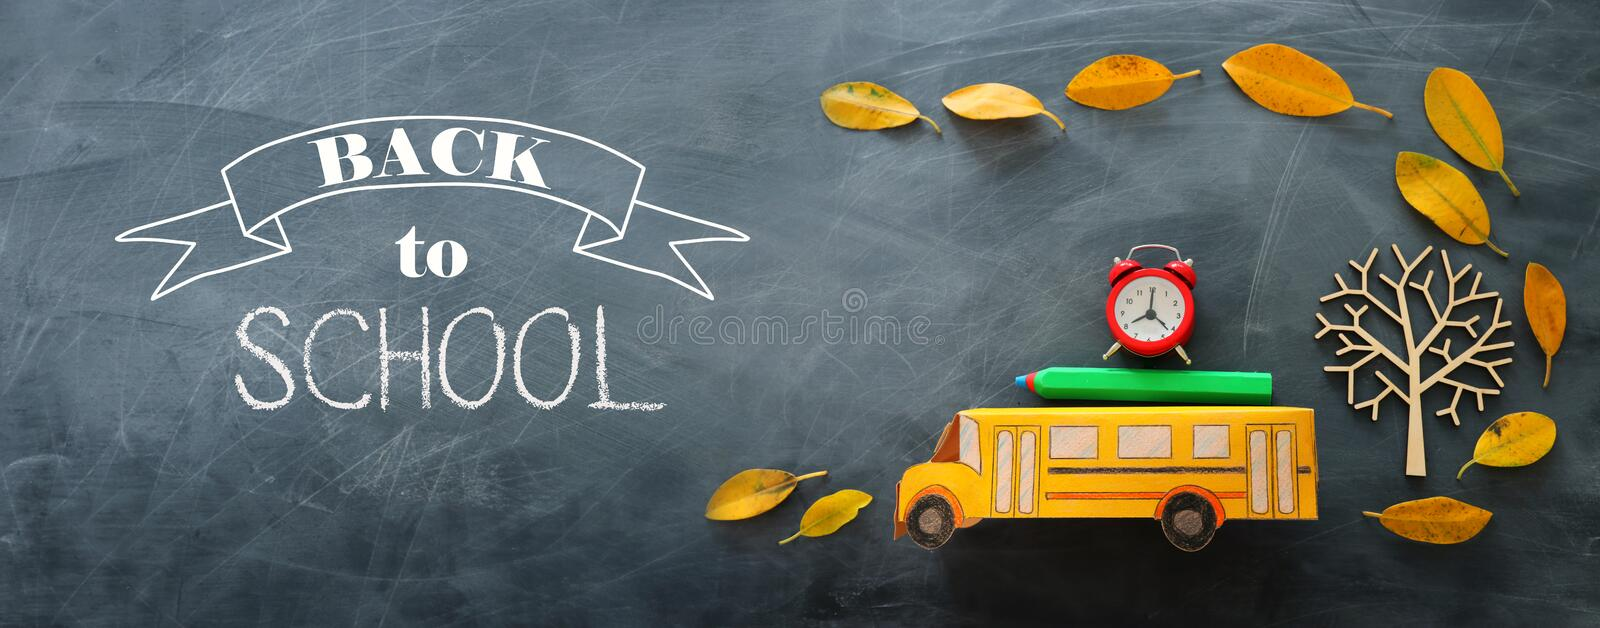 Back to school concept. Top view banner of school bus, alarm clock and pencil next to tree with autumn dry leaves over classroom. Blackboard background stock images